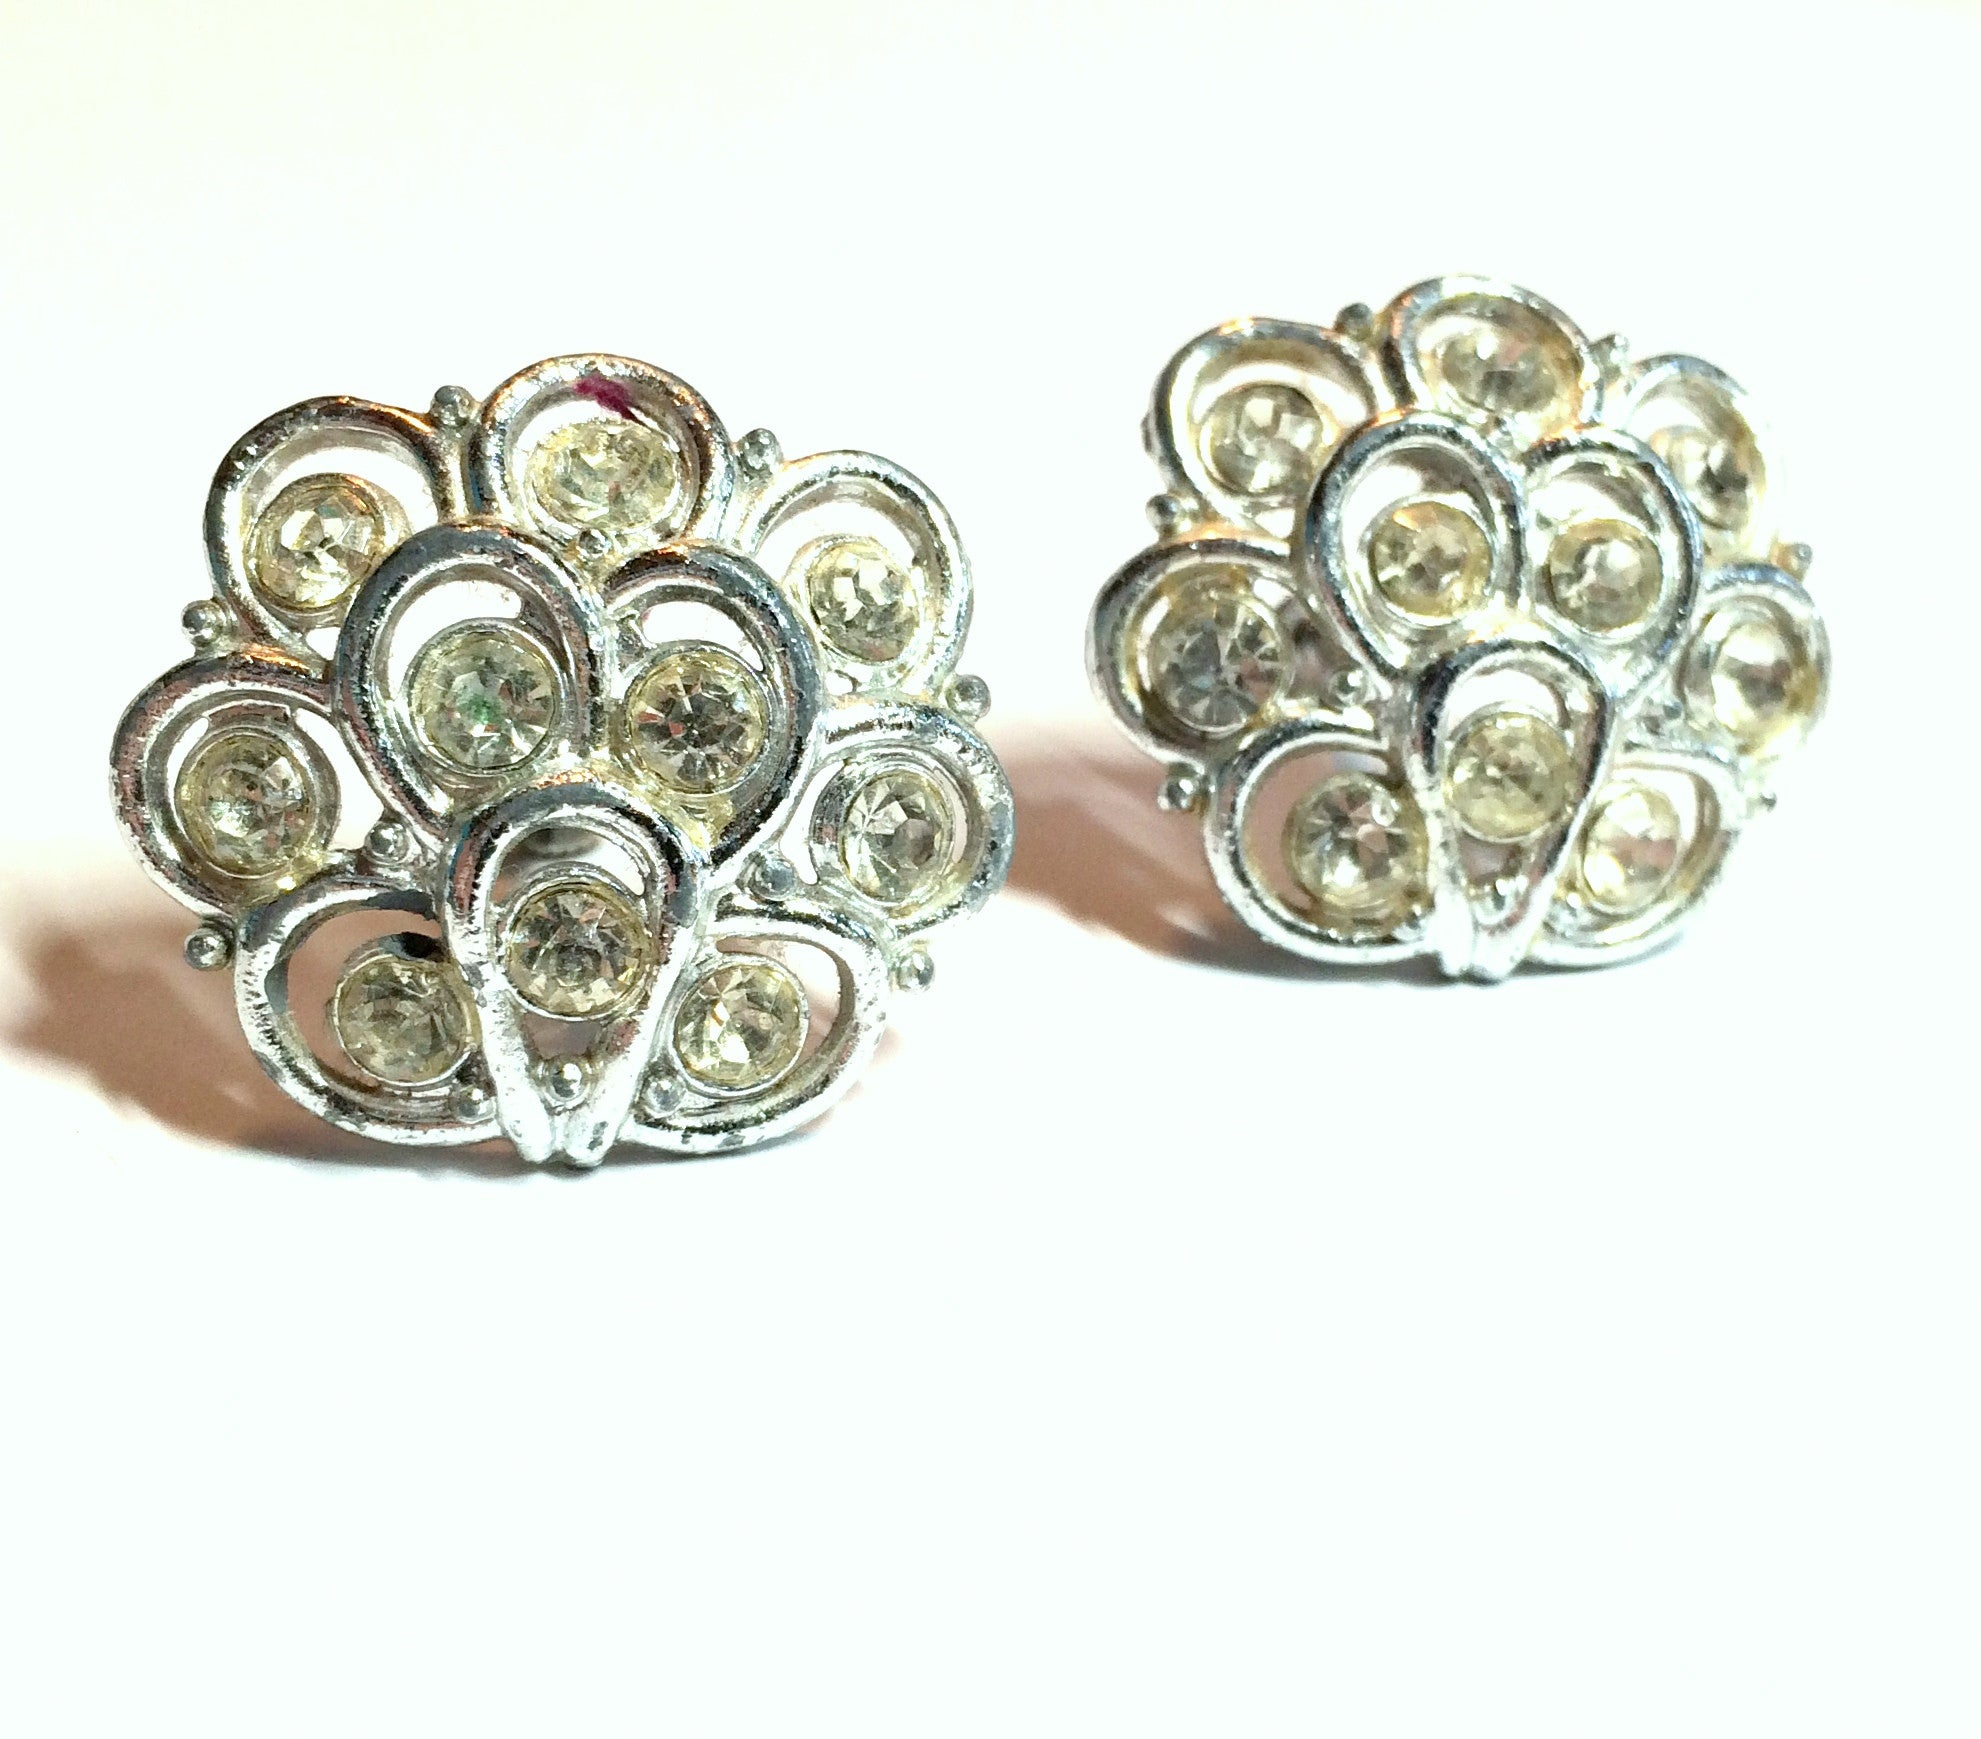 Silvery Scalloped Rhinestone Clip Earrings circa 1960s